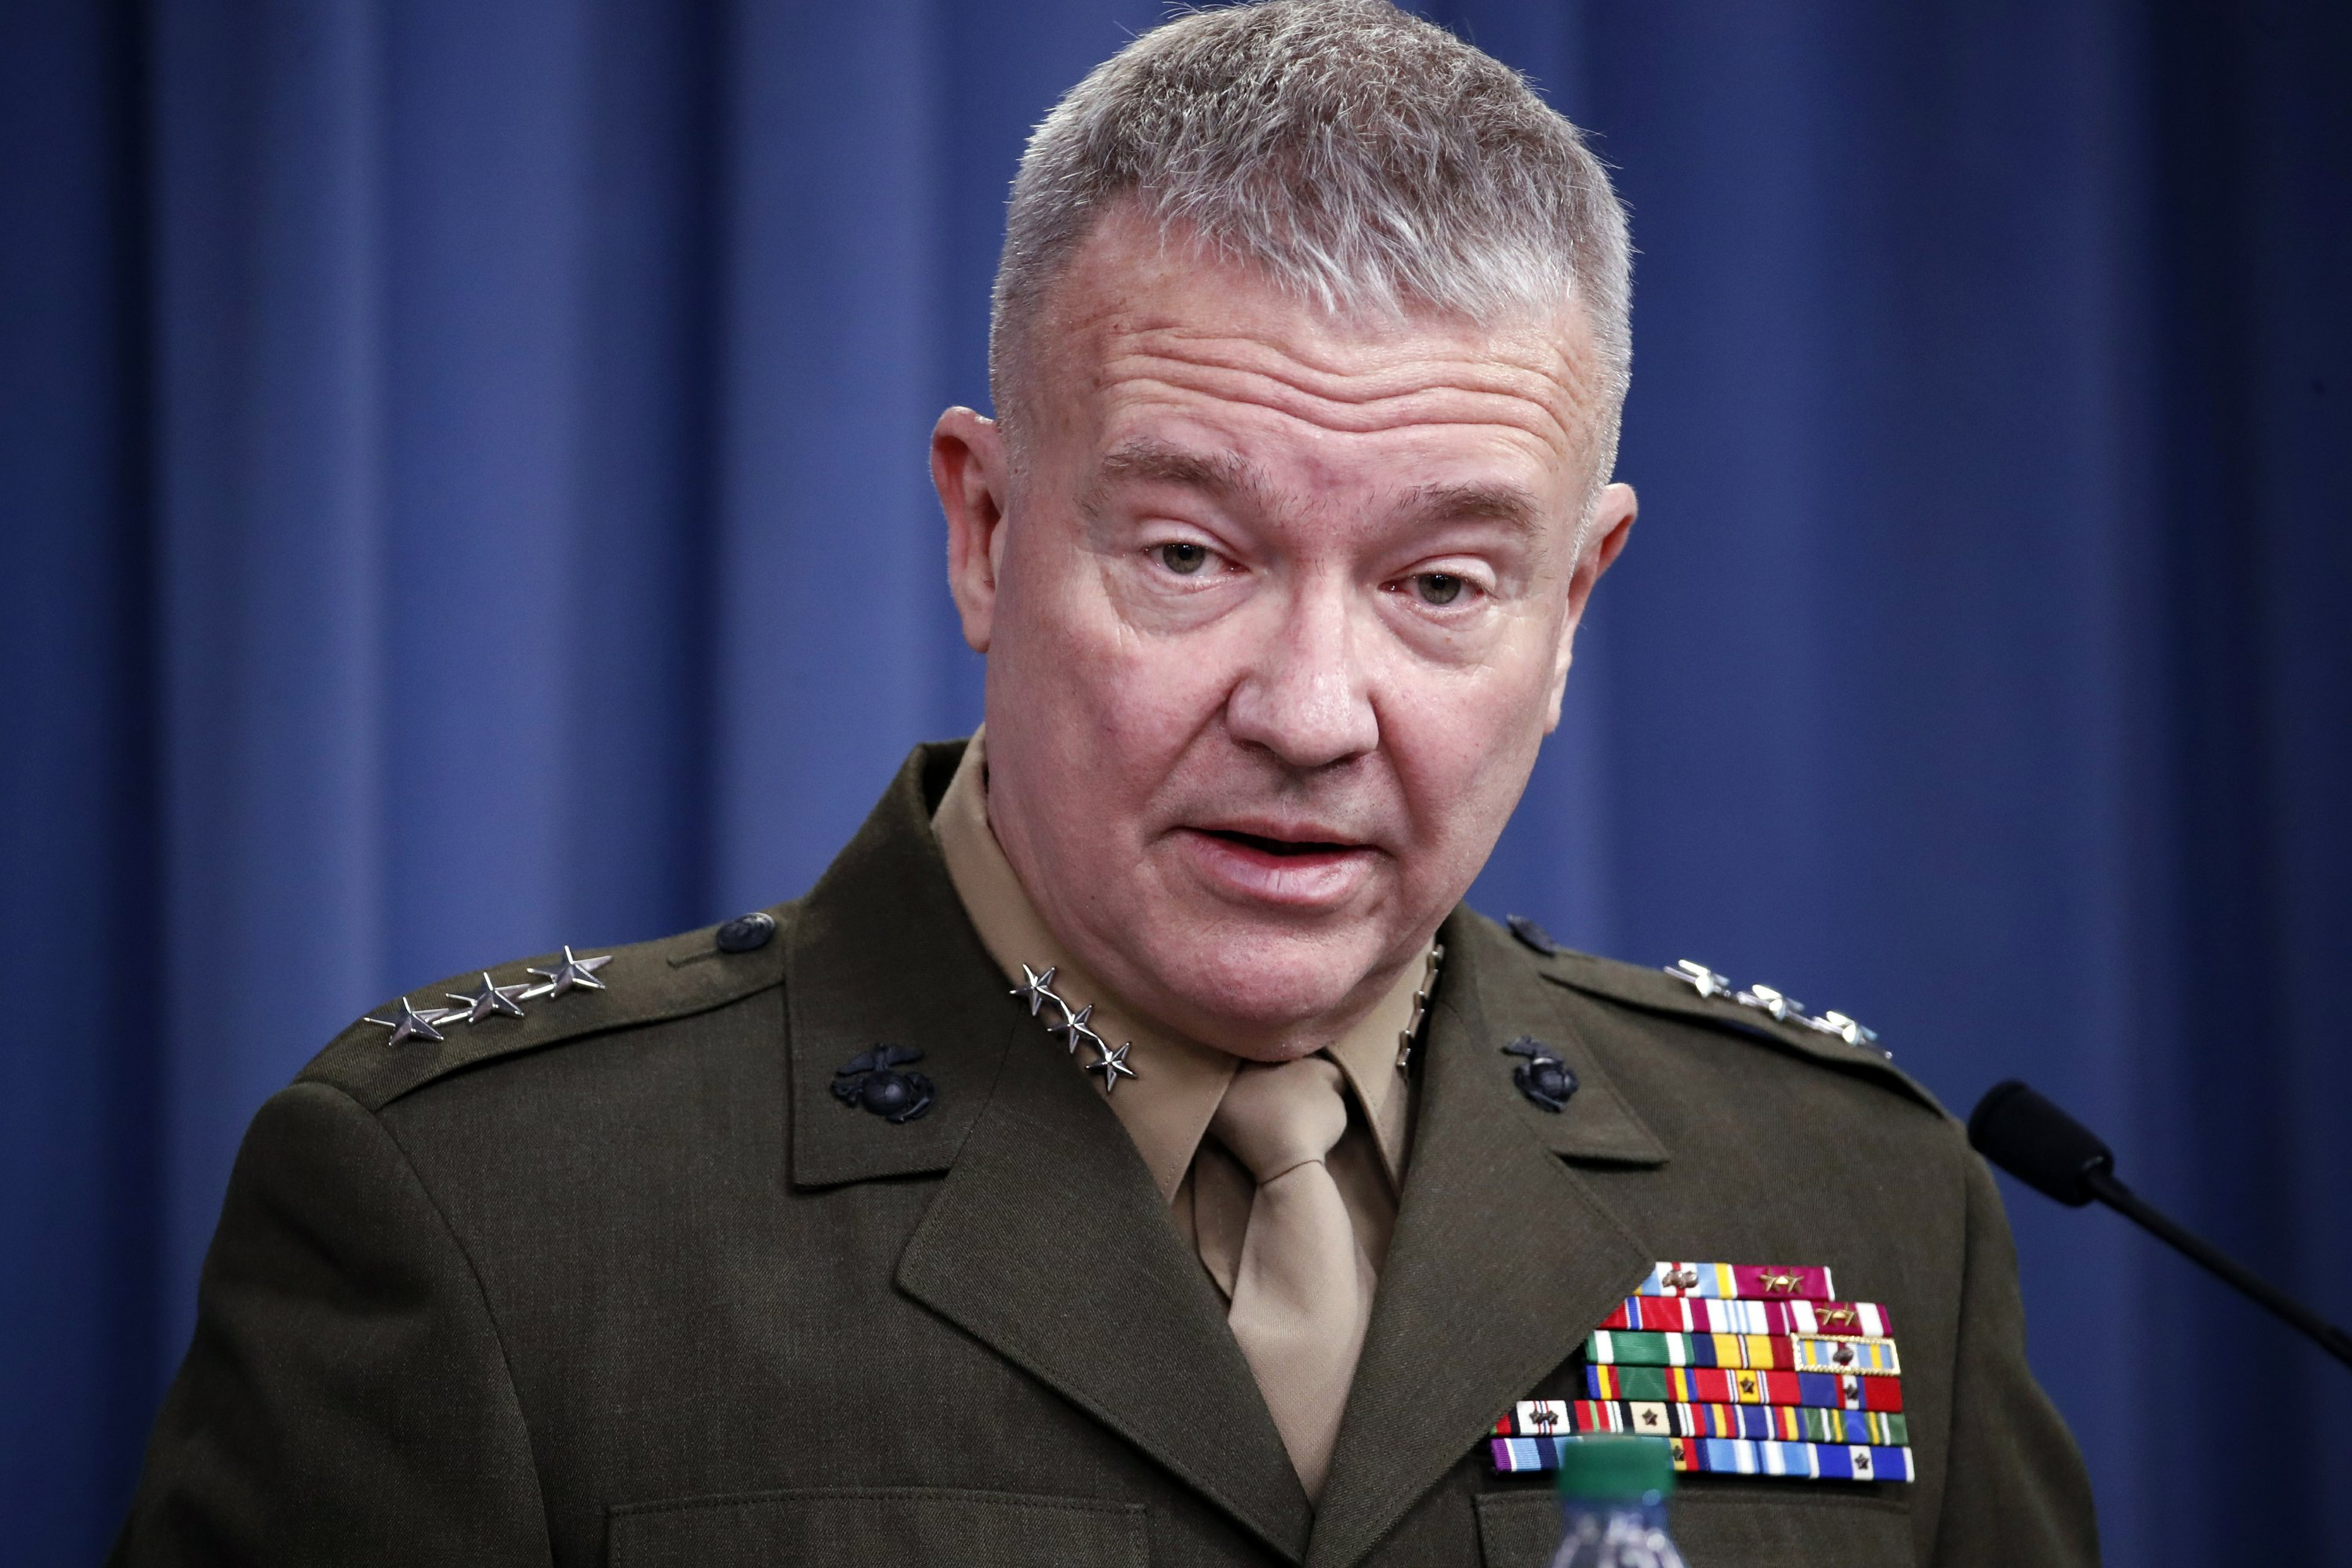 US commander says he believes Iran threat still 'very real'